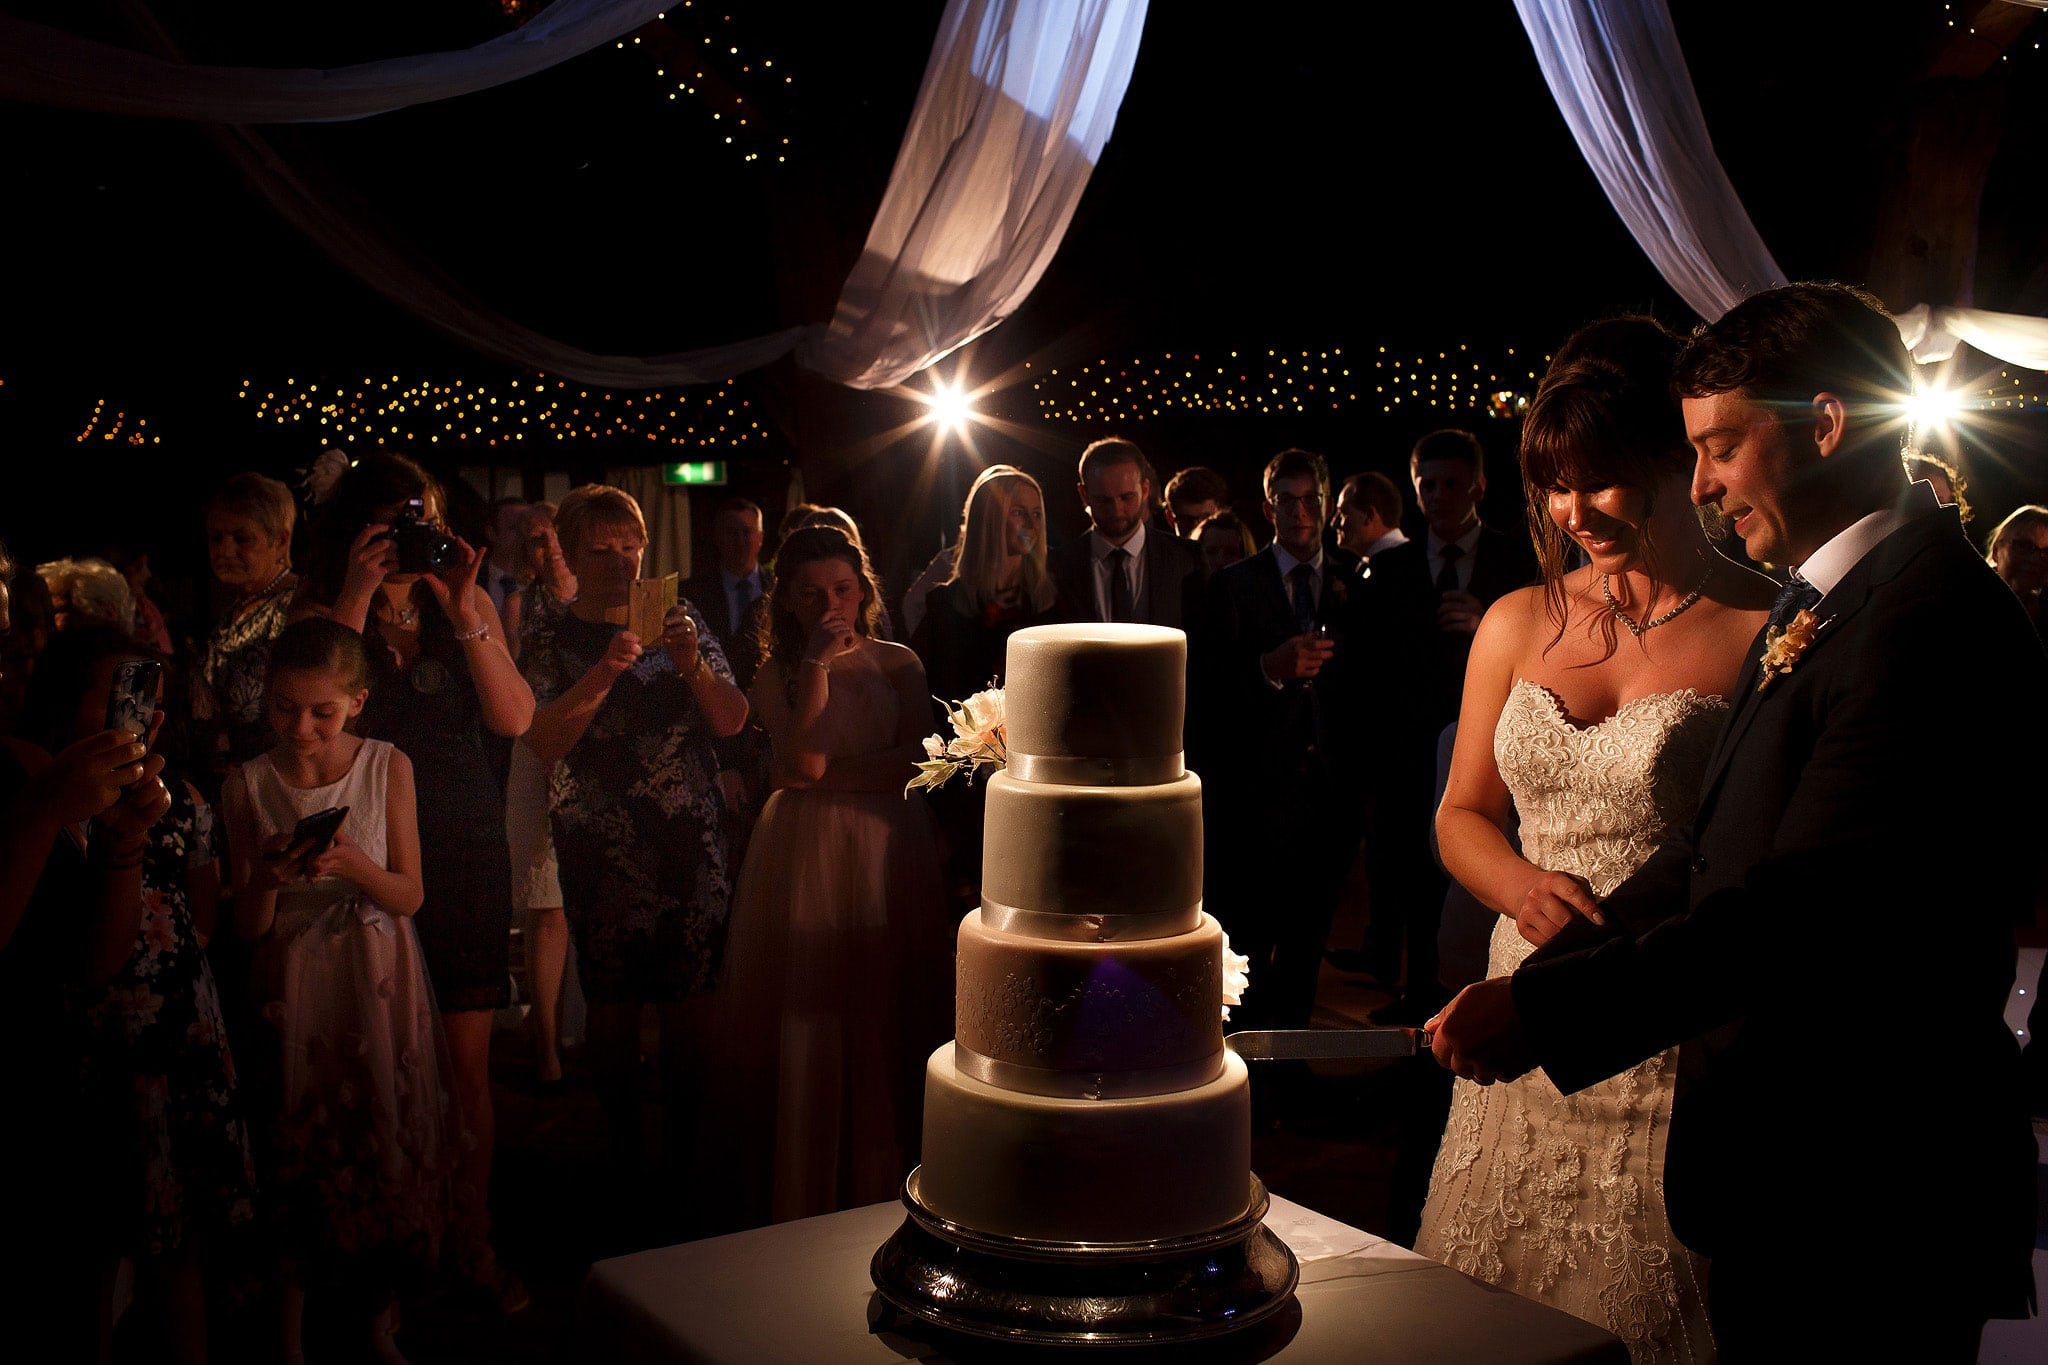 Bride and groom cutting four tier wedding cake in front of all the guests at Rivington Hall Barn wedding reception